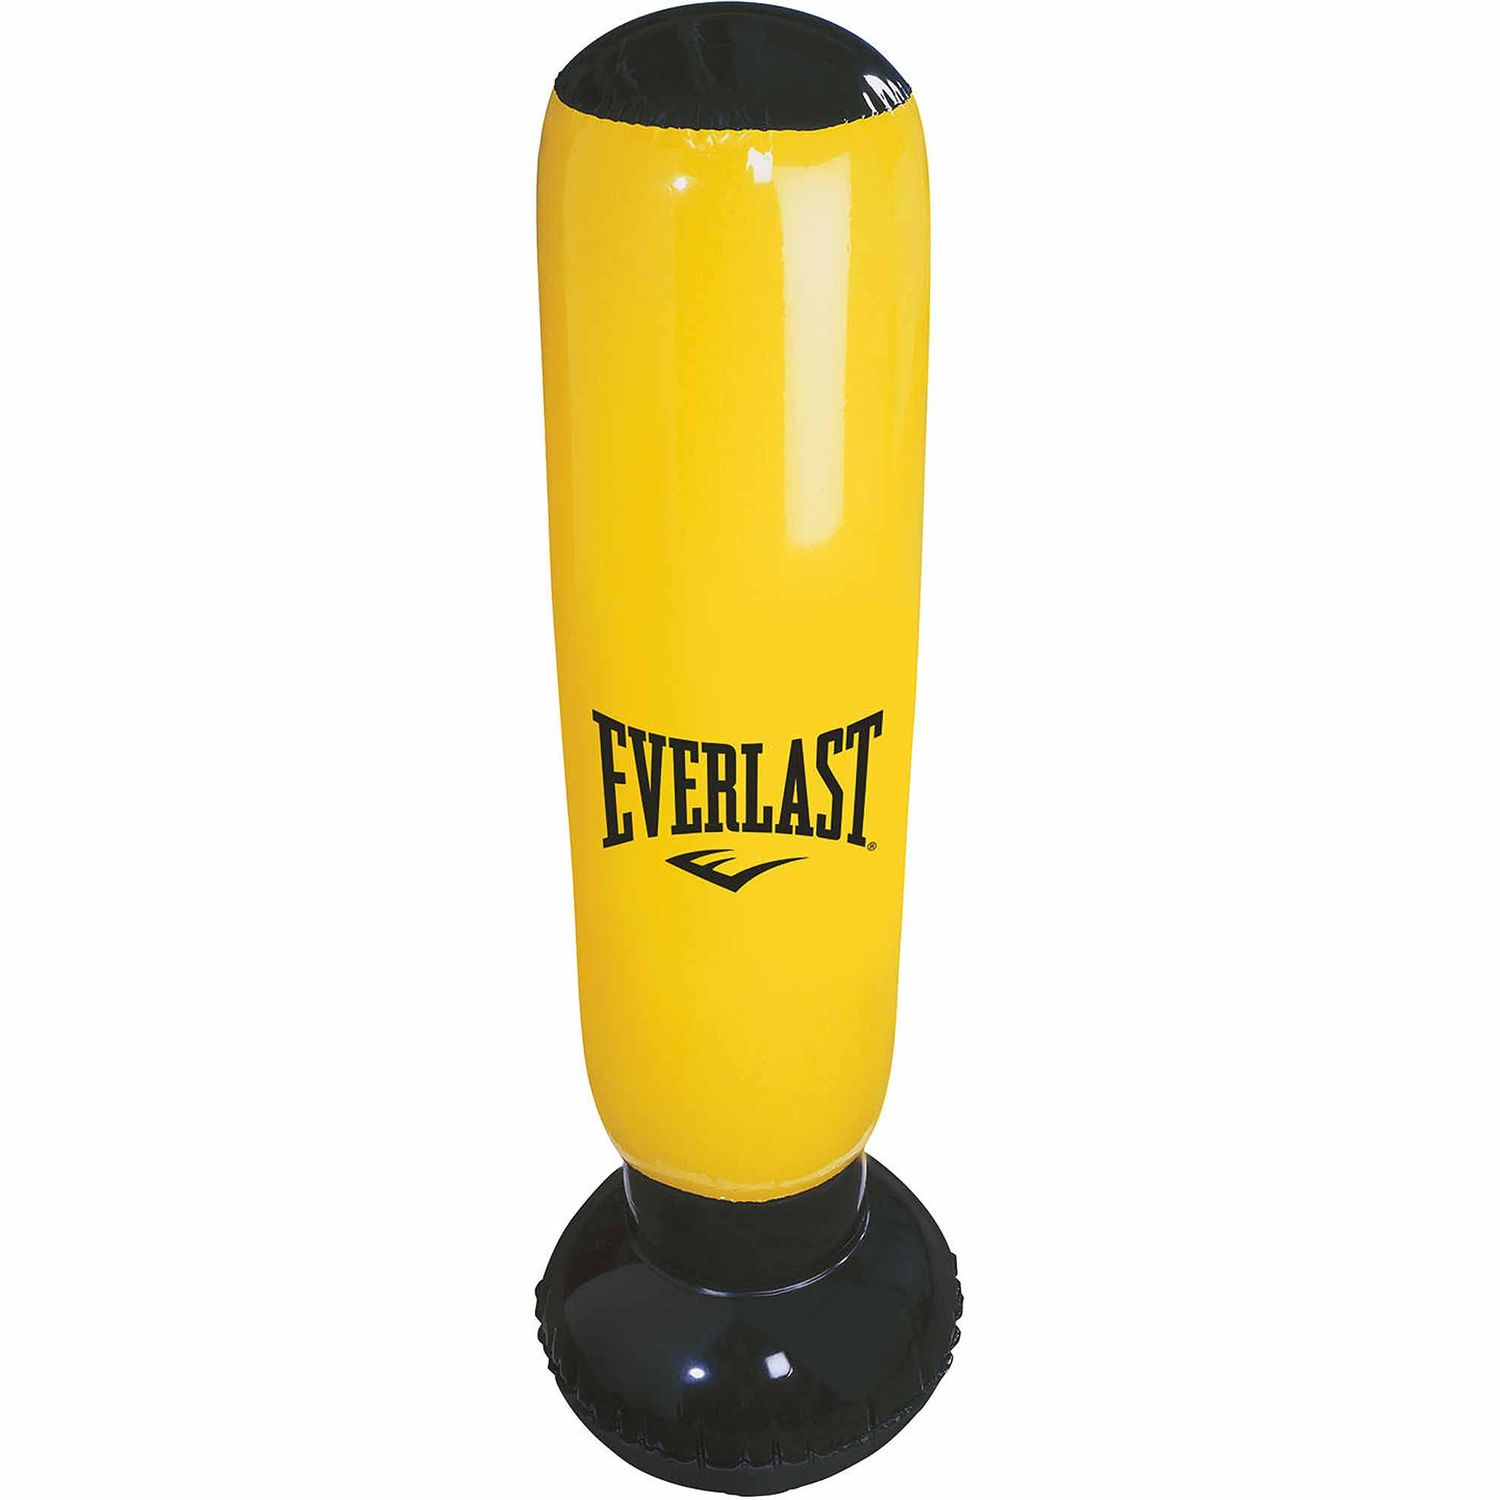 Everlast Tower Inflatable Punching Bag